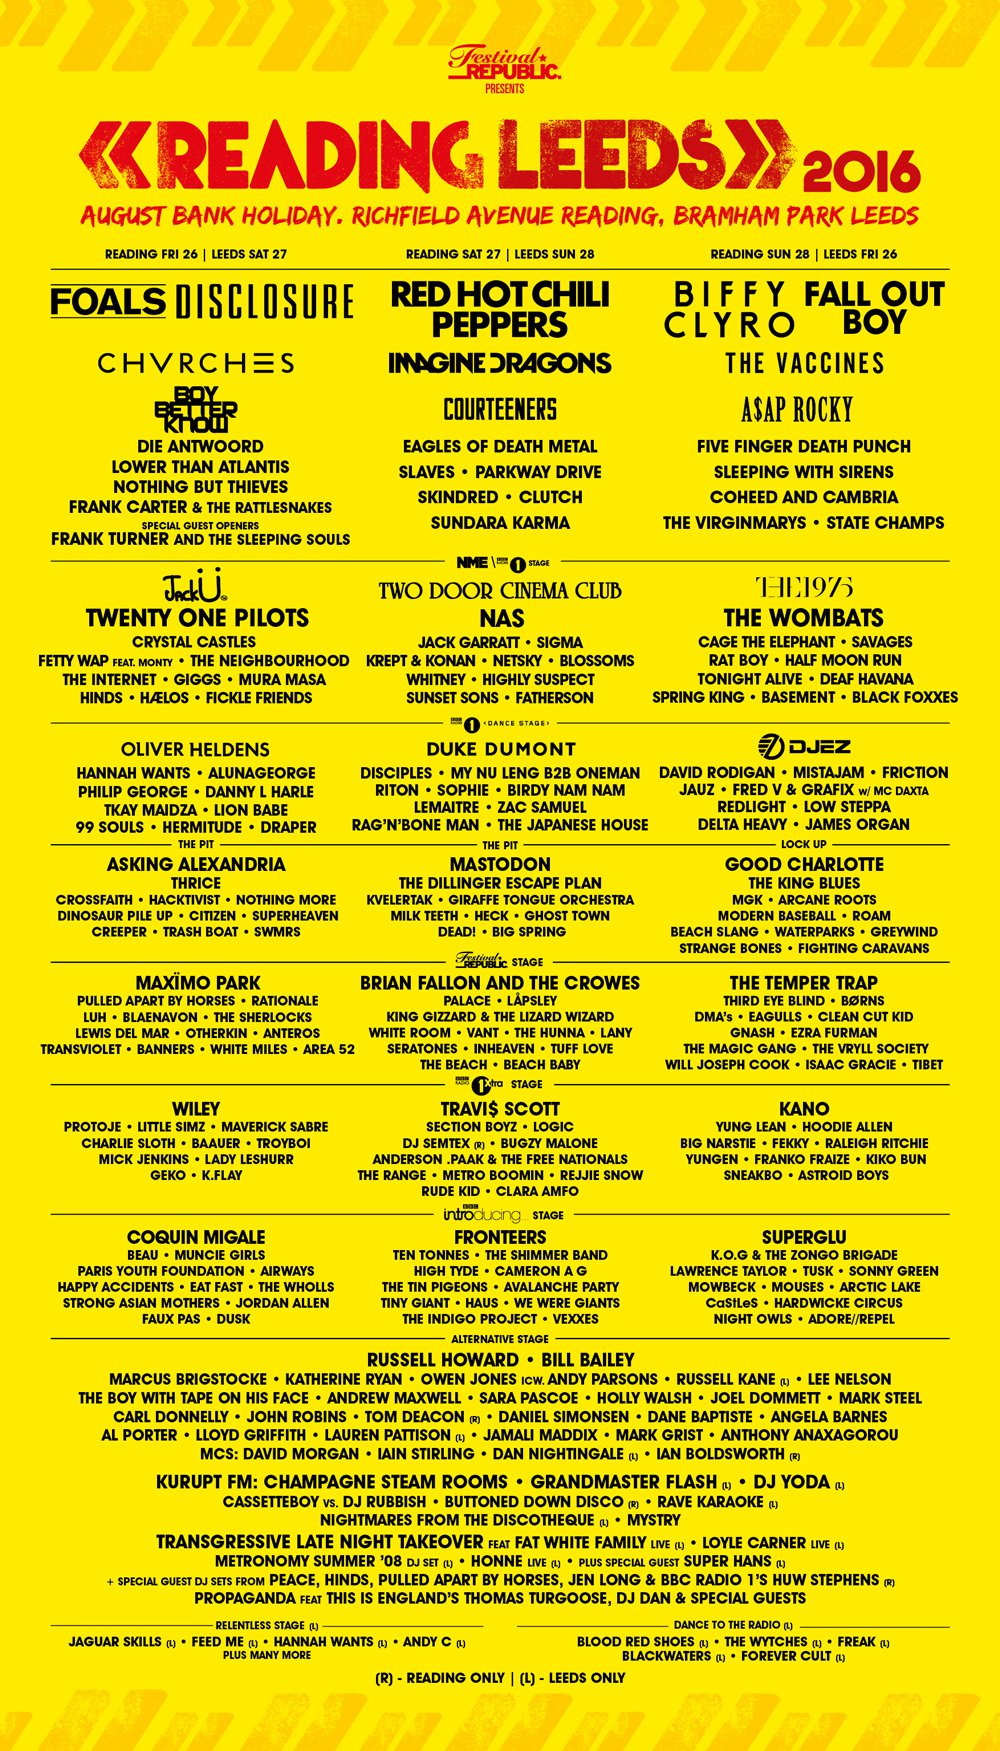 Get your hands on one of the last remaining weekend or day tickets here.  http://www.leedsfestival.com/tickets